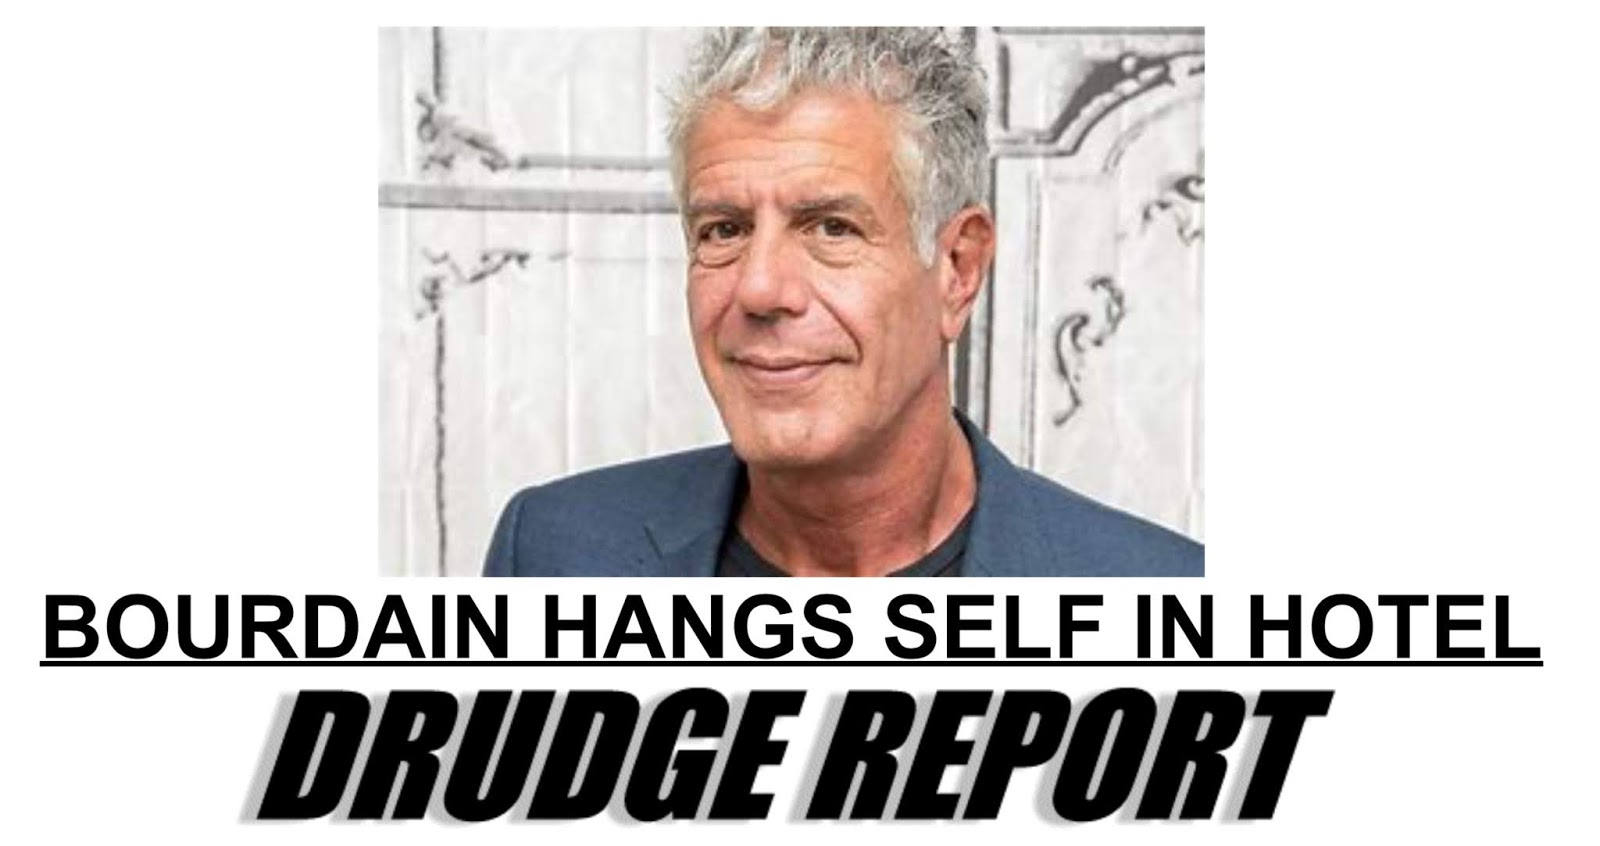 Althouse: Anthony Bourdain has killed himself!